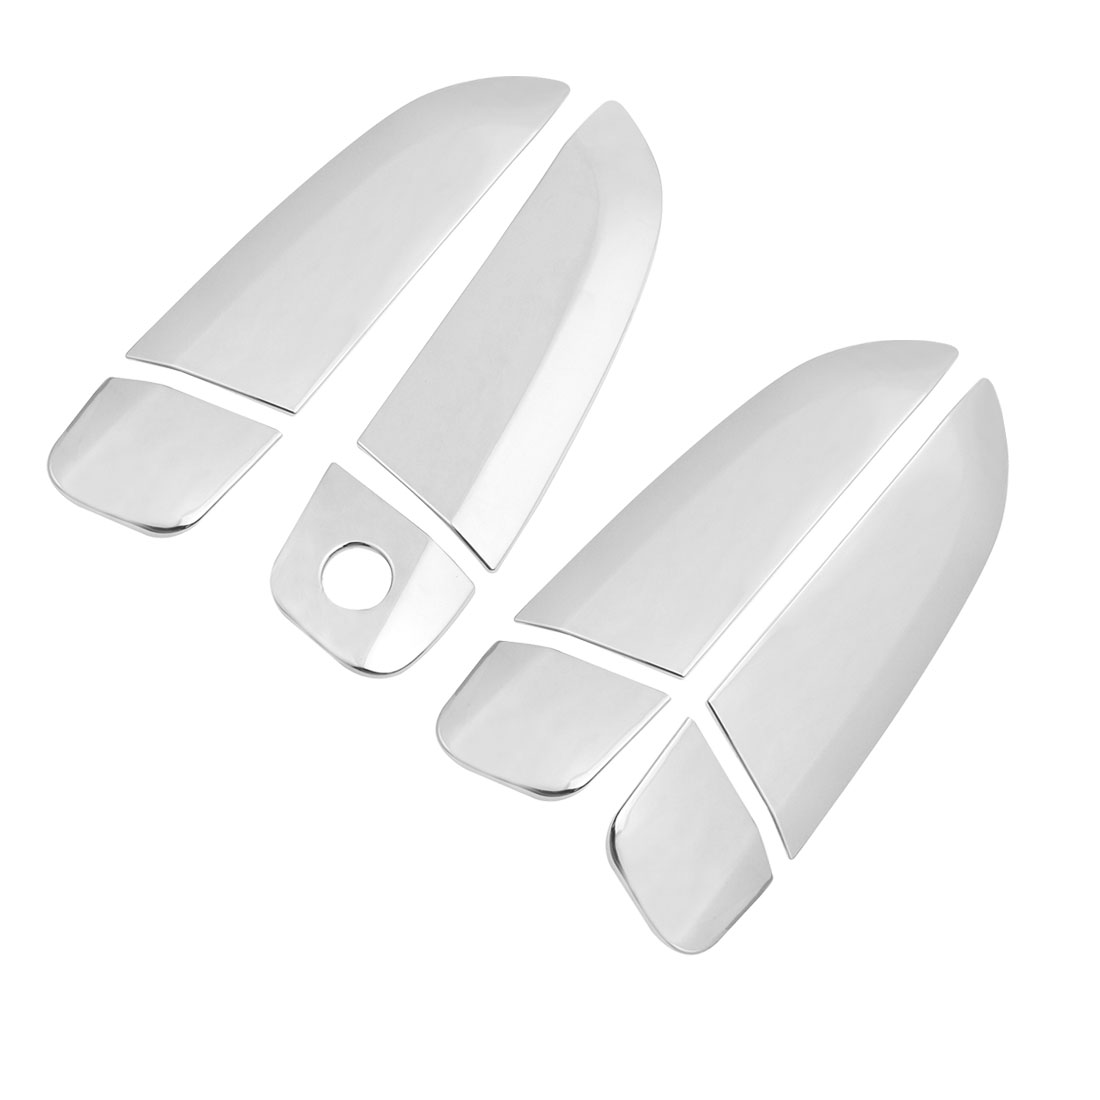 4 Pcs Silver Tone Chrome Car Door Handle Cover Set for Chevrolet Sail